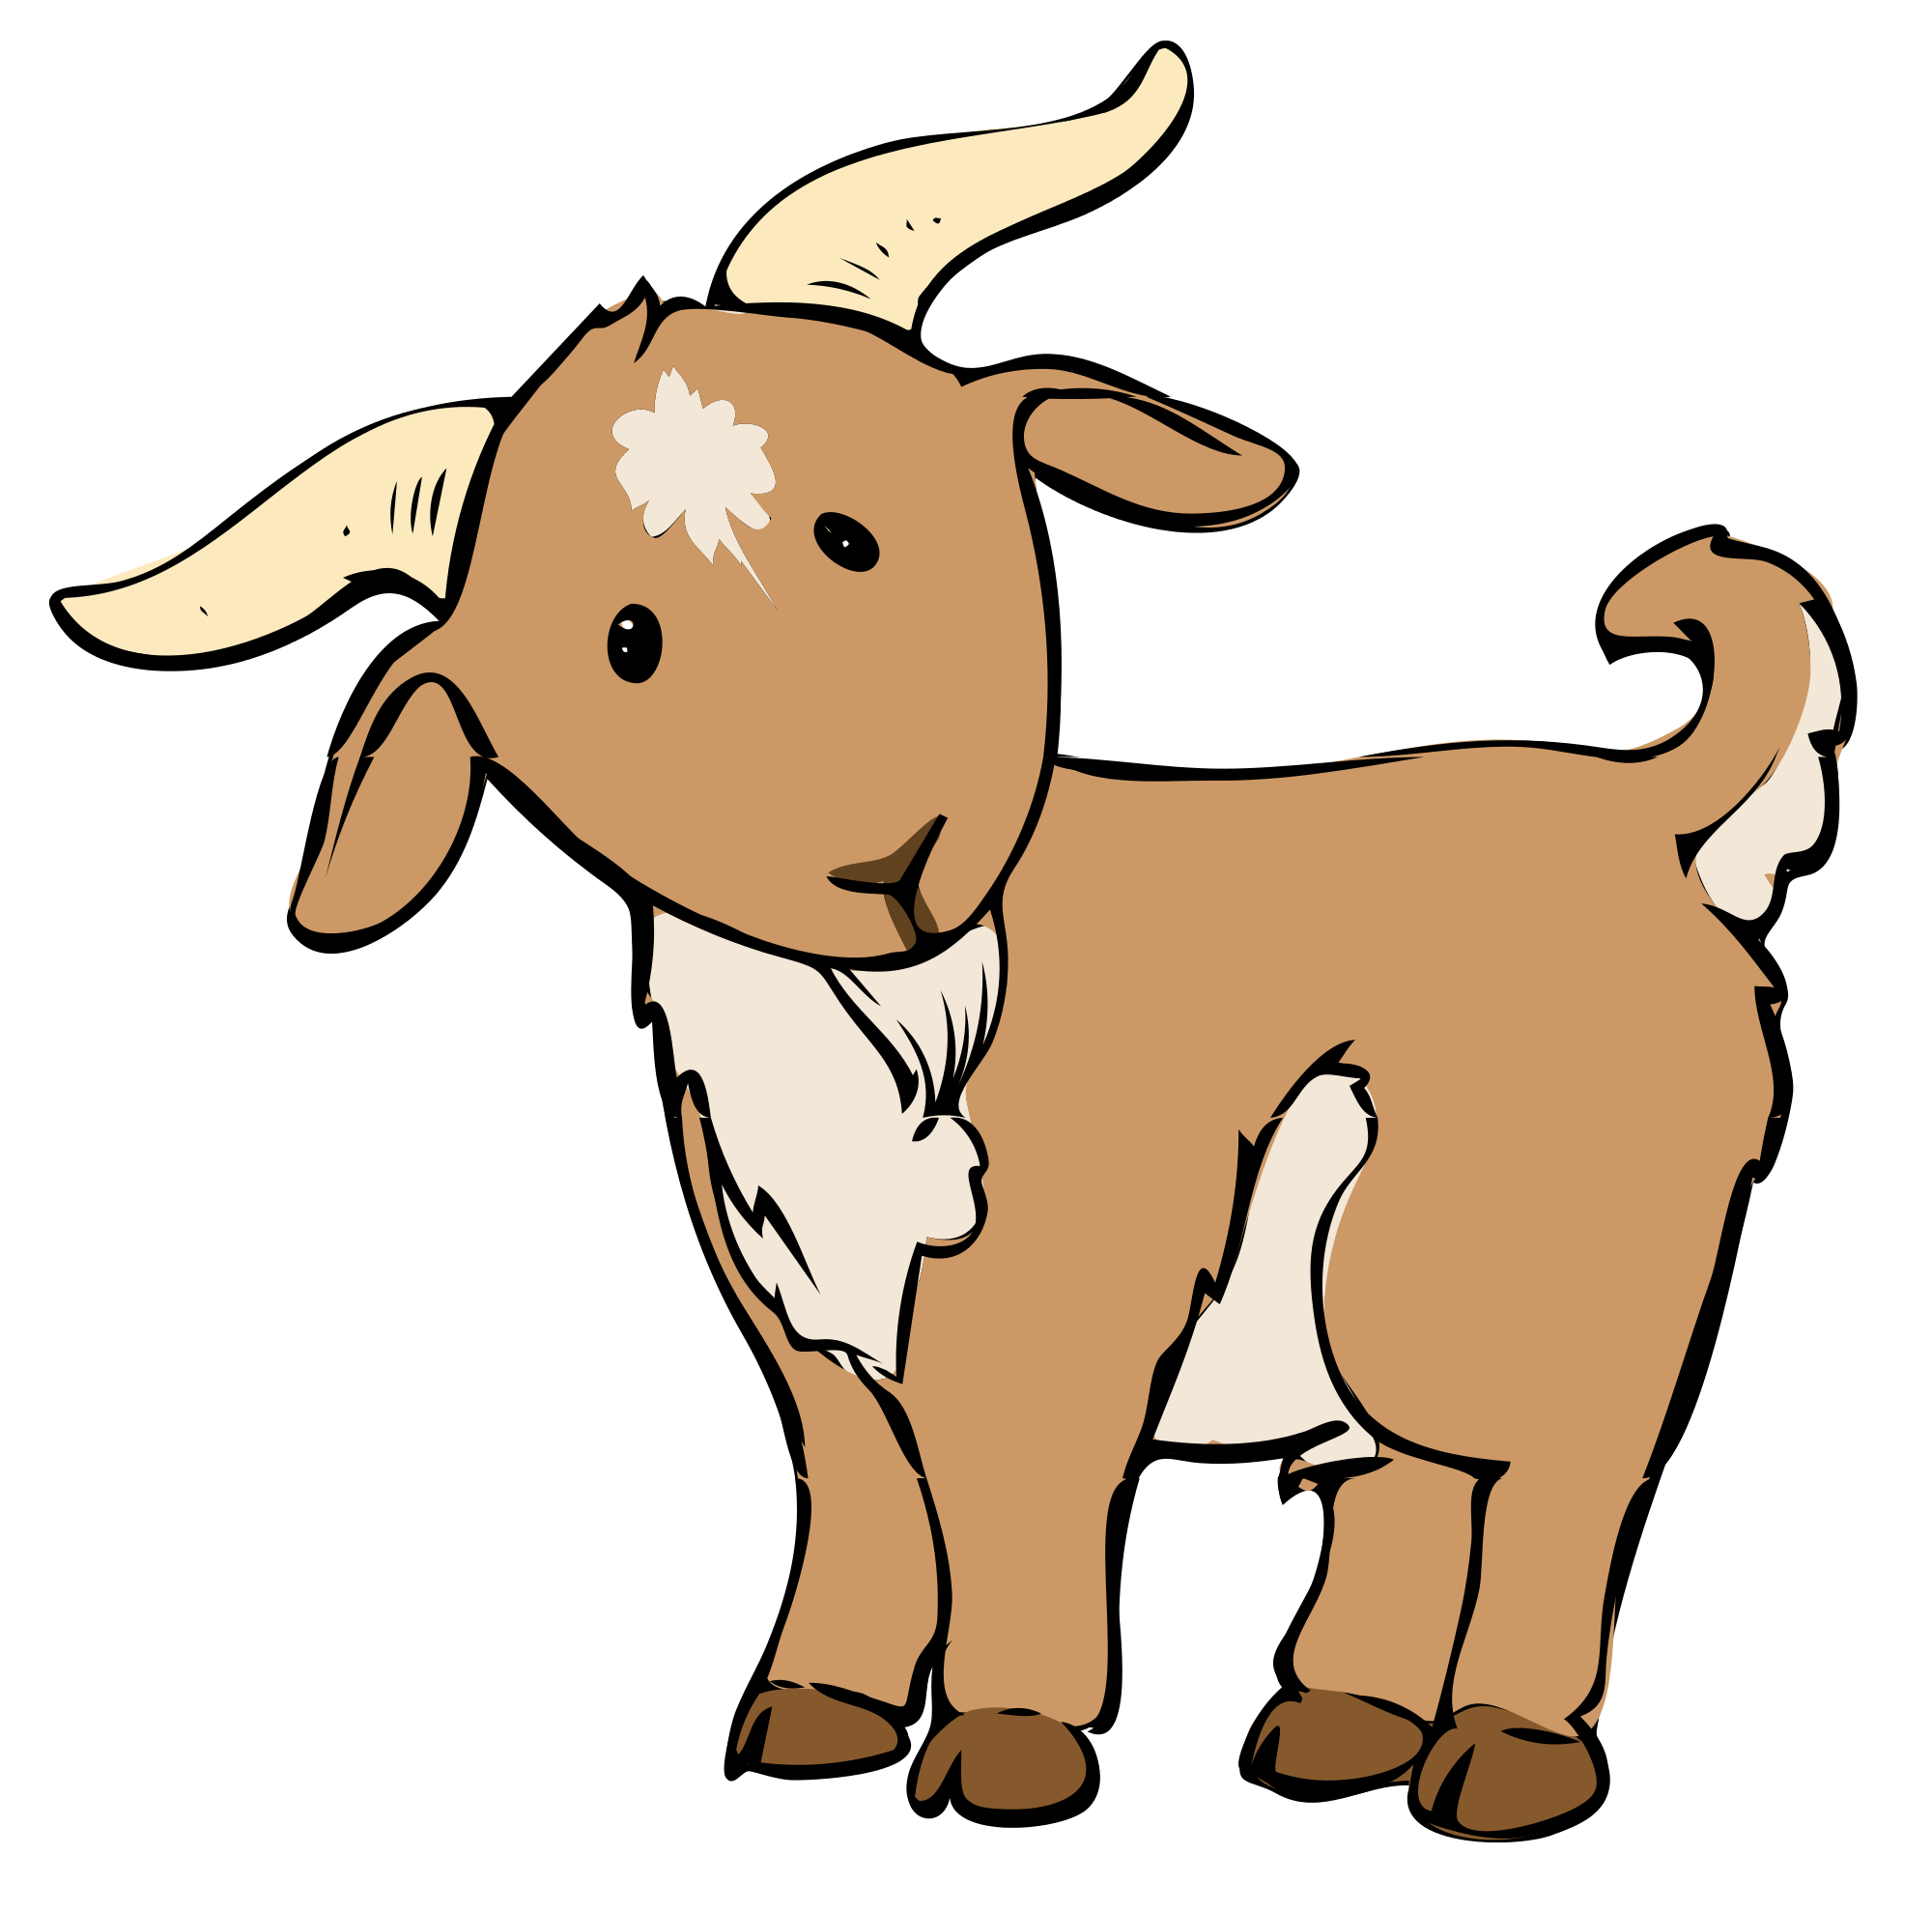 2000x1979 Cute Goat Png Hd Transparent Cute Goat Hd.png Images. Pluspng